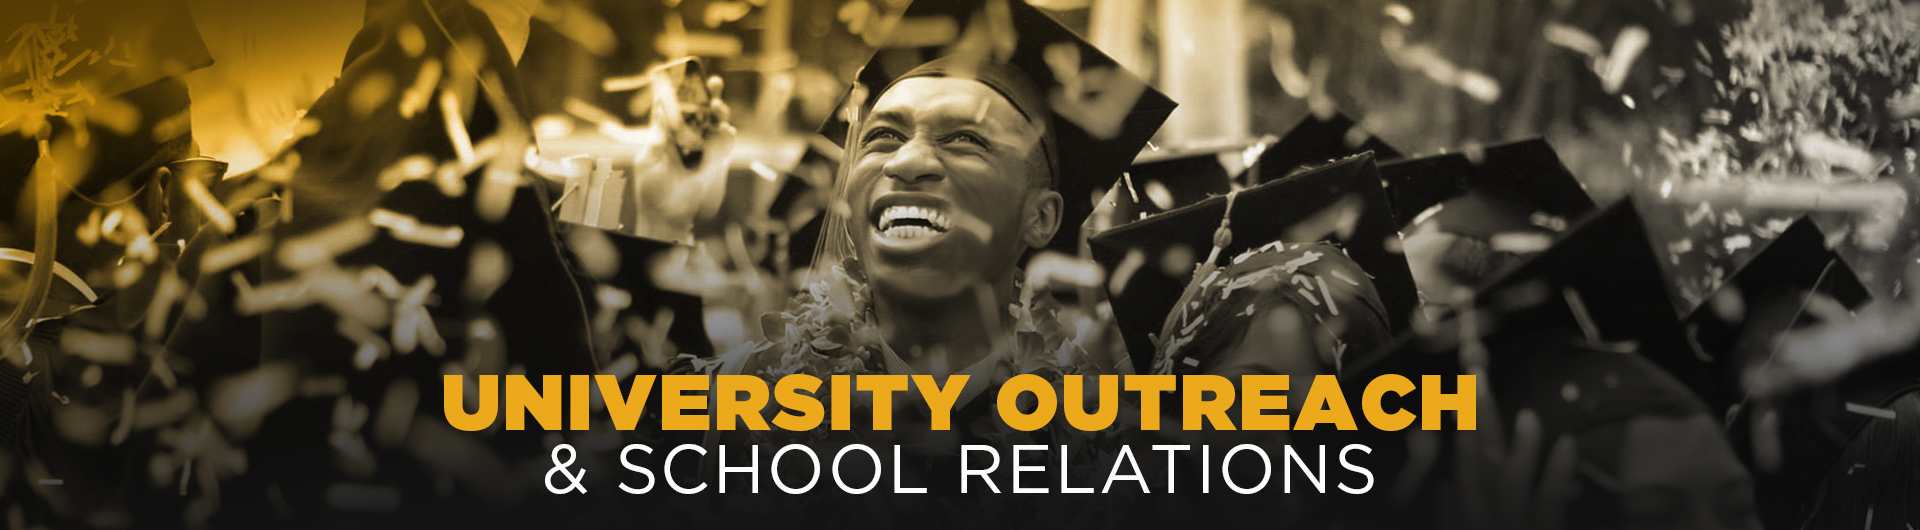 University Outreach & School Relations